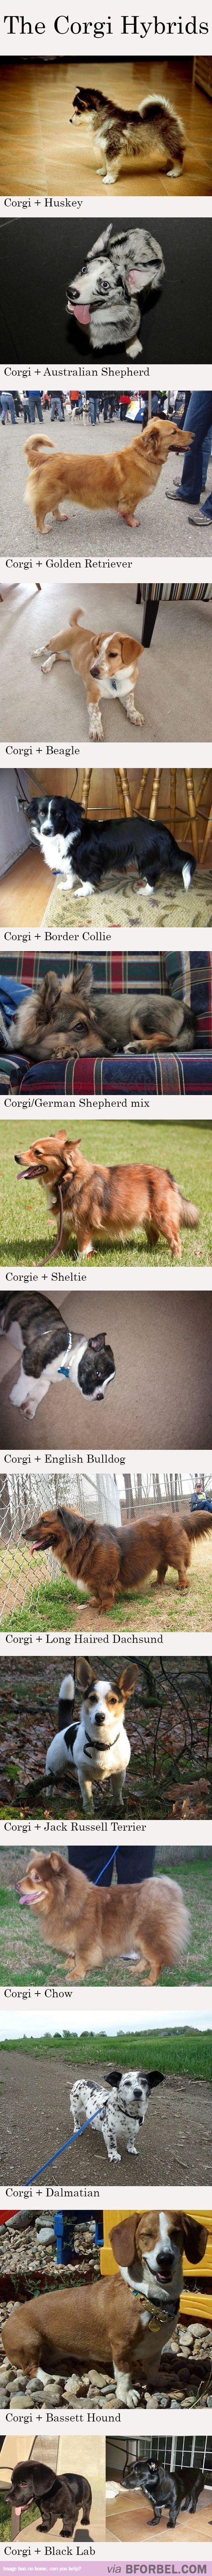 14 Of The Most Adorable Corgi Hybrids…I have a Corgador!!!!! She looks just like the one in the last picture